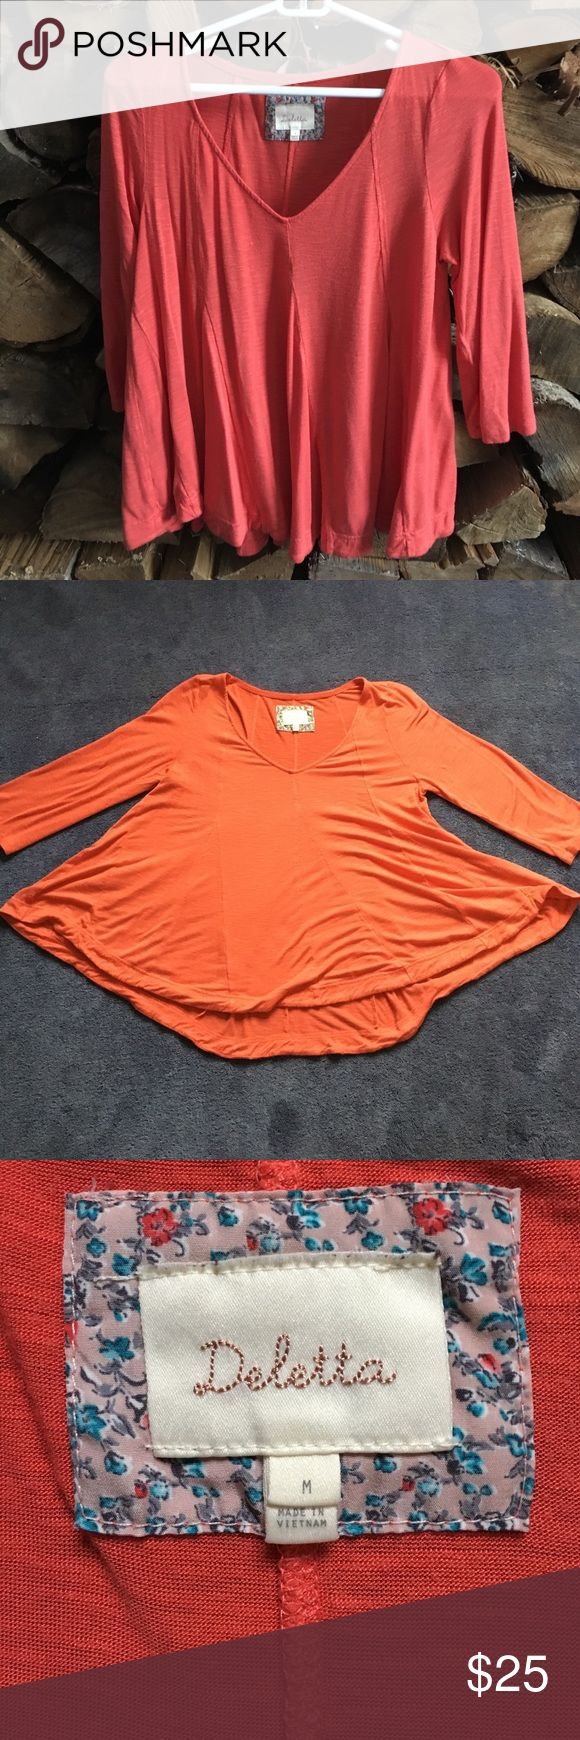 Anthropologie size M 3/4 coral shirt Coral 3/4 sleeve shirt. Very flowey shirt Anthropologie Tops Tees - Long Sleeve